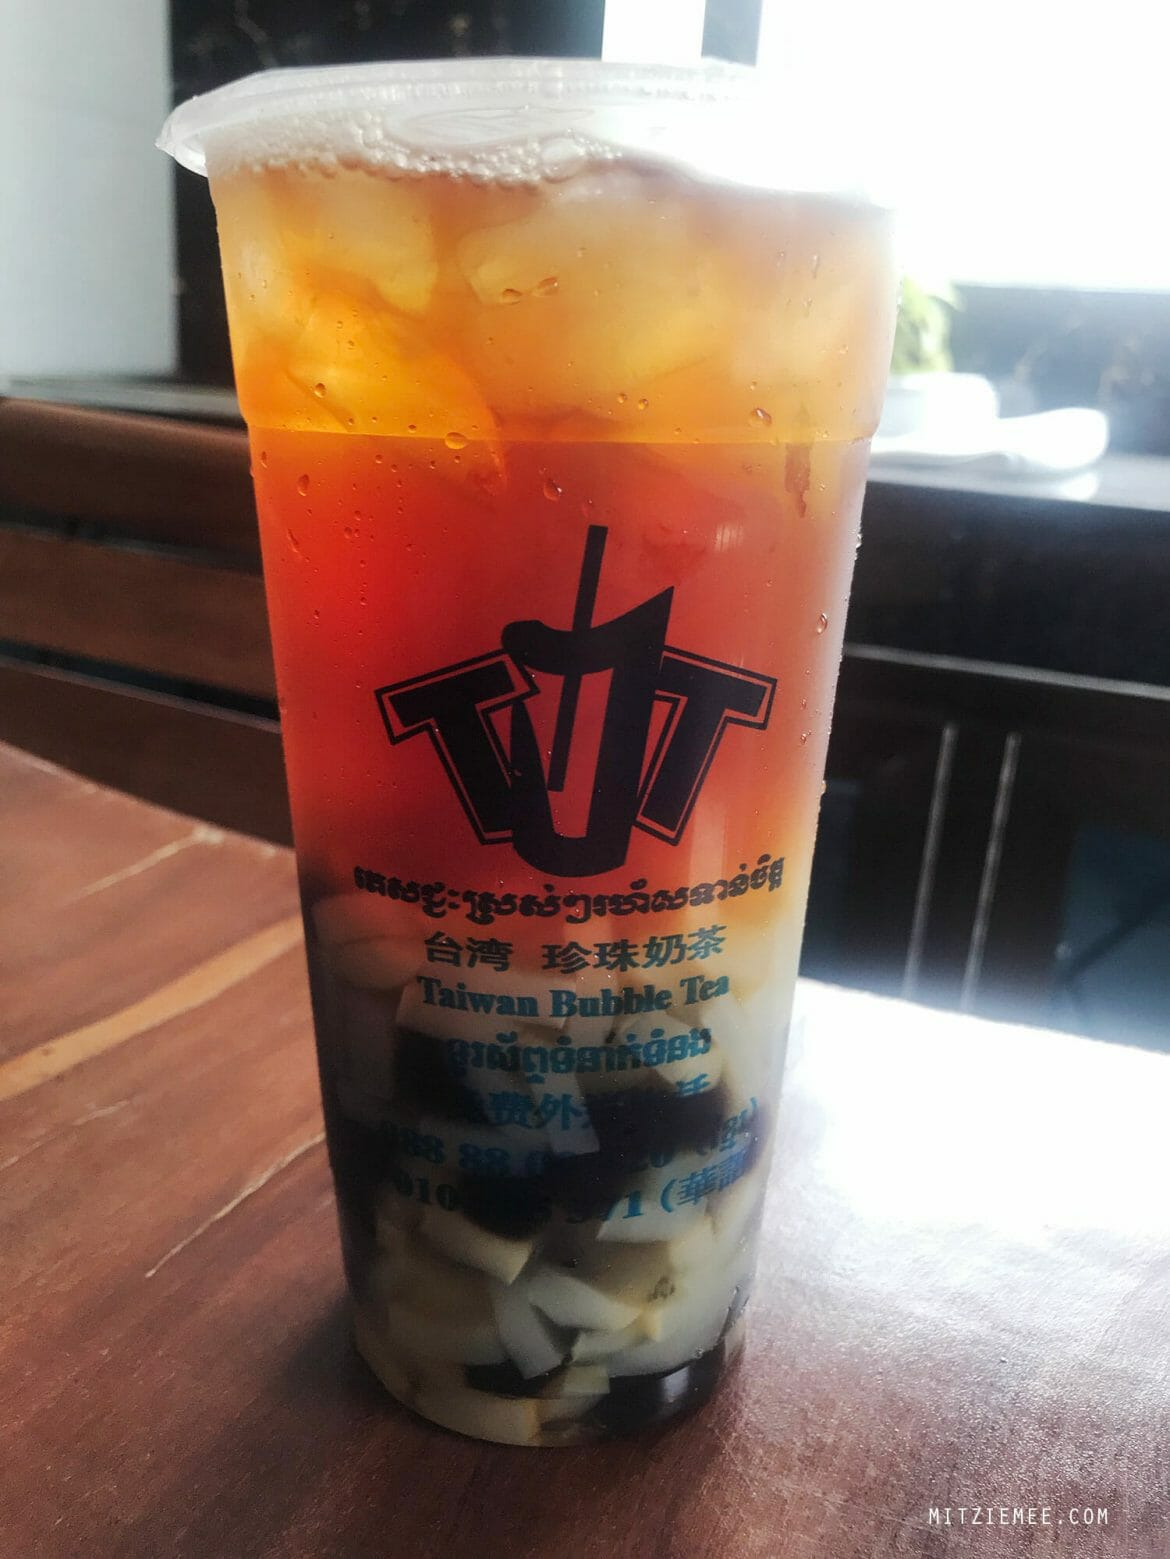 Taiwan Bubble Tea in Phnom Penh